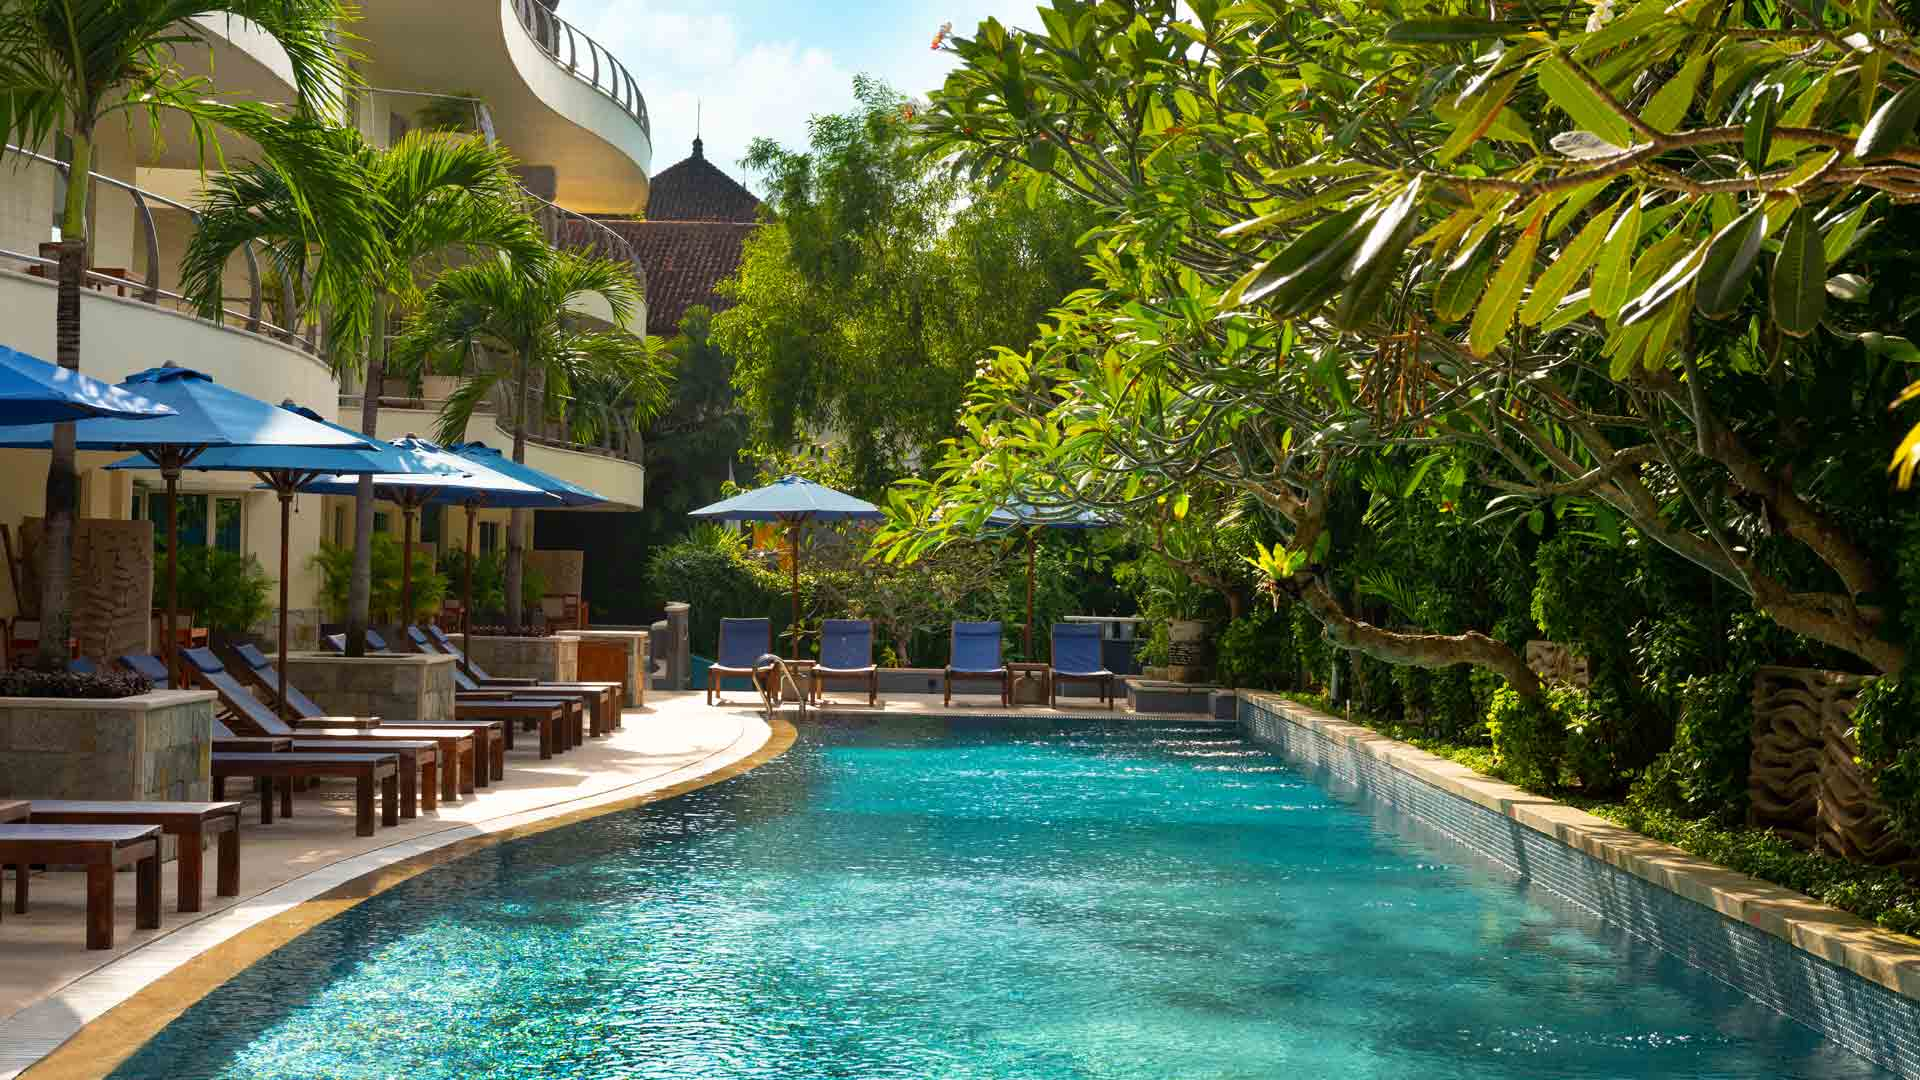 https://assets.anantara.com/image/upload/q_auto,f_auto/media/minor/anantara/images/anantara-vacation-club-legian-bali/the-resort/anantara_vacation_club_legian_pool_desktop_banner_1920x1080.jpg